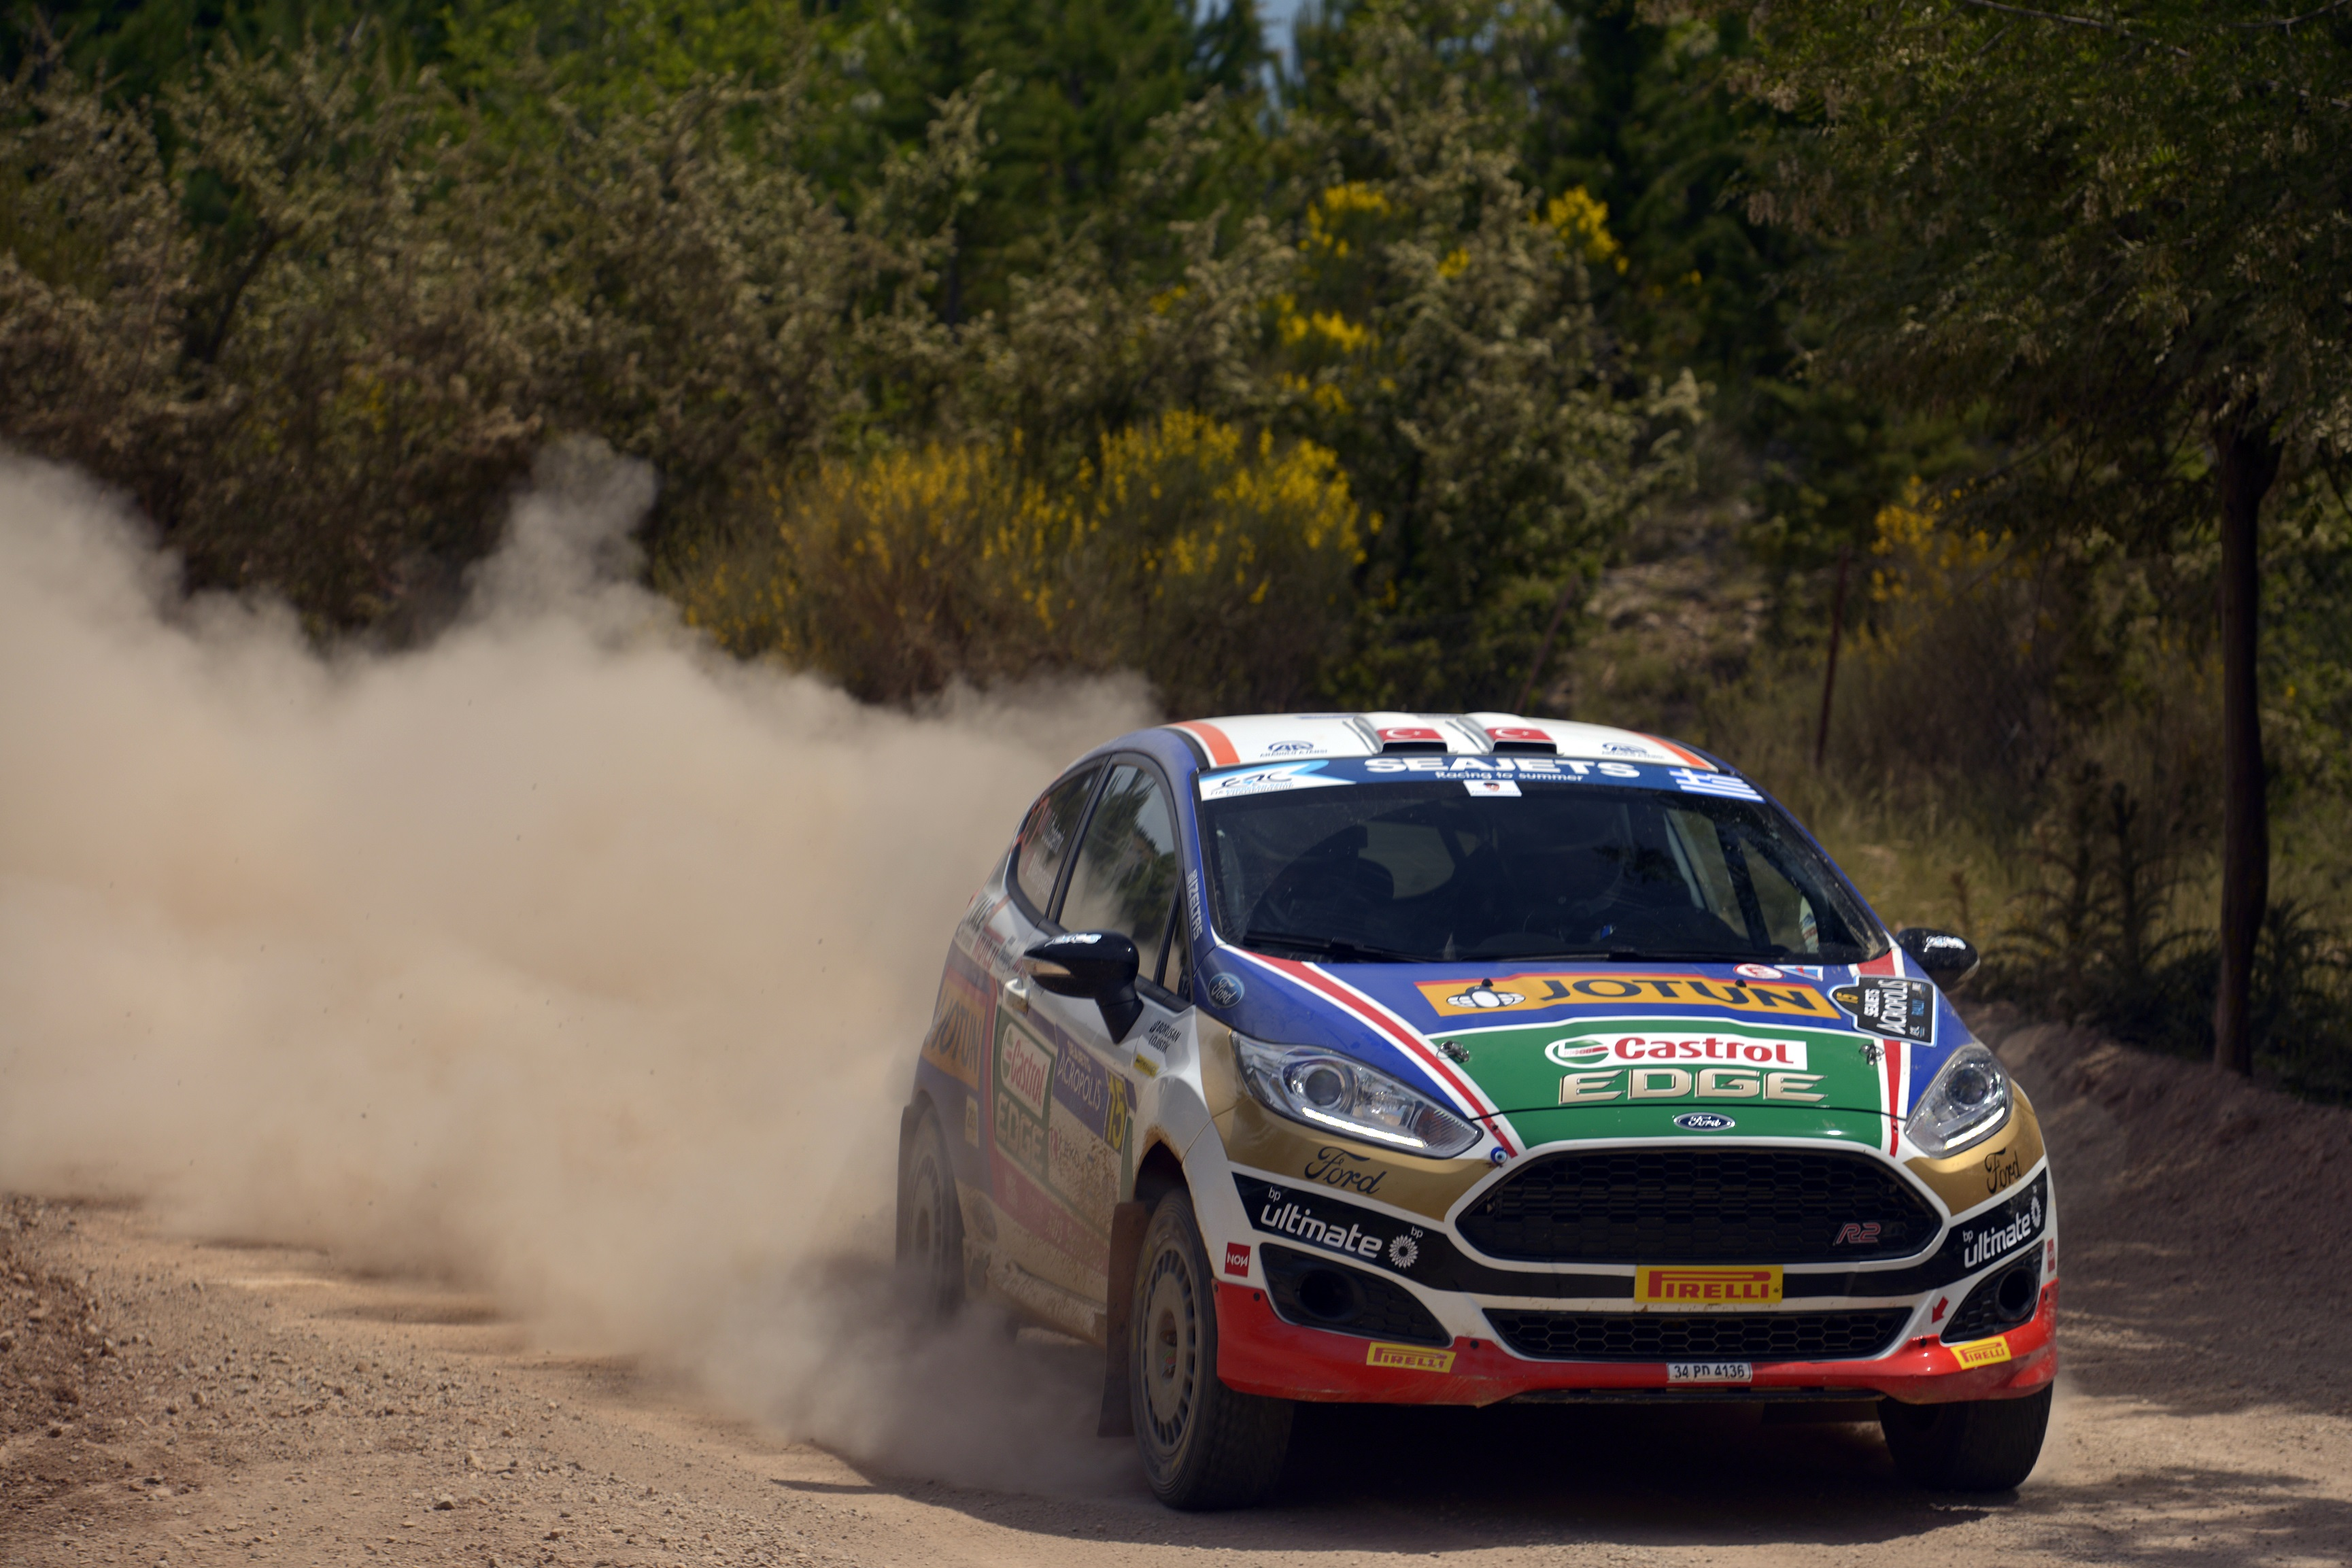 1507100025_Castrol_Ford_Team_Turkey.jpg